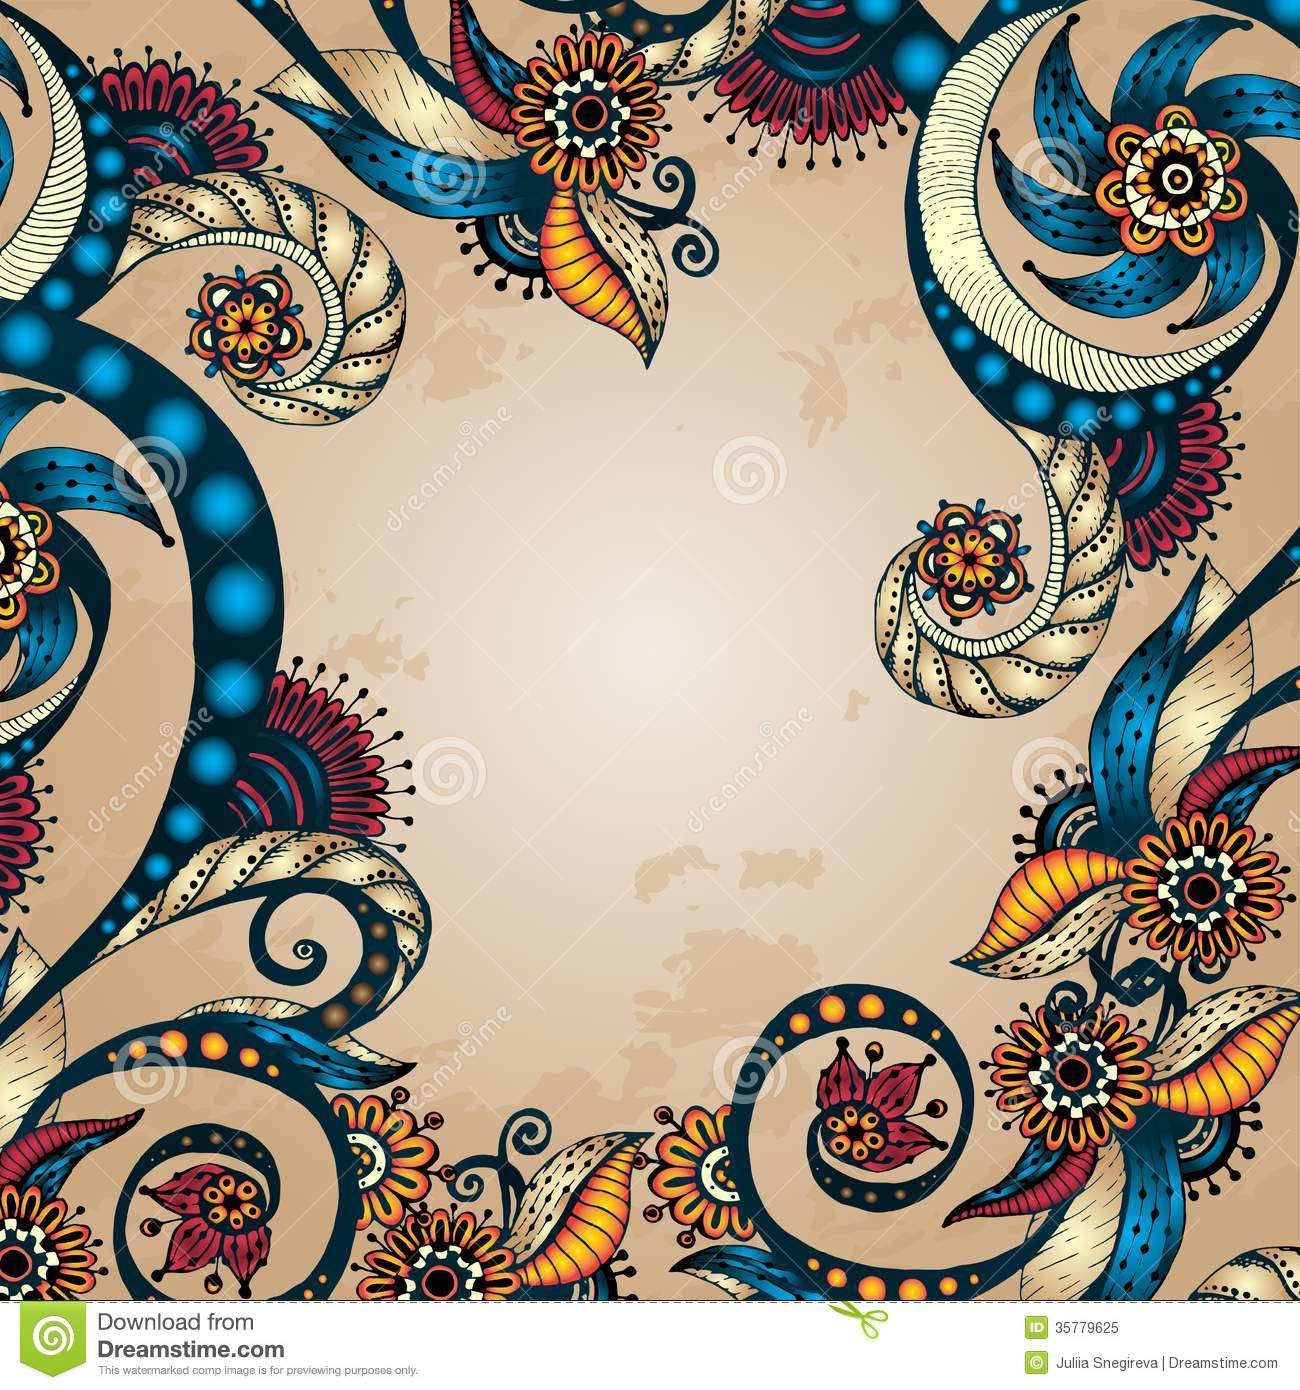 Abstract Floral Backgrounds For Your Design Vector abstract floral